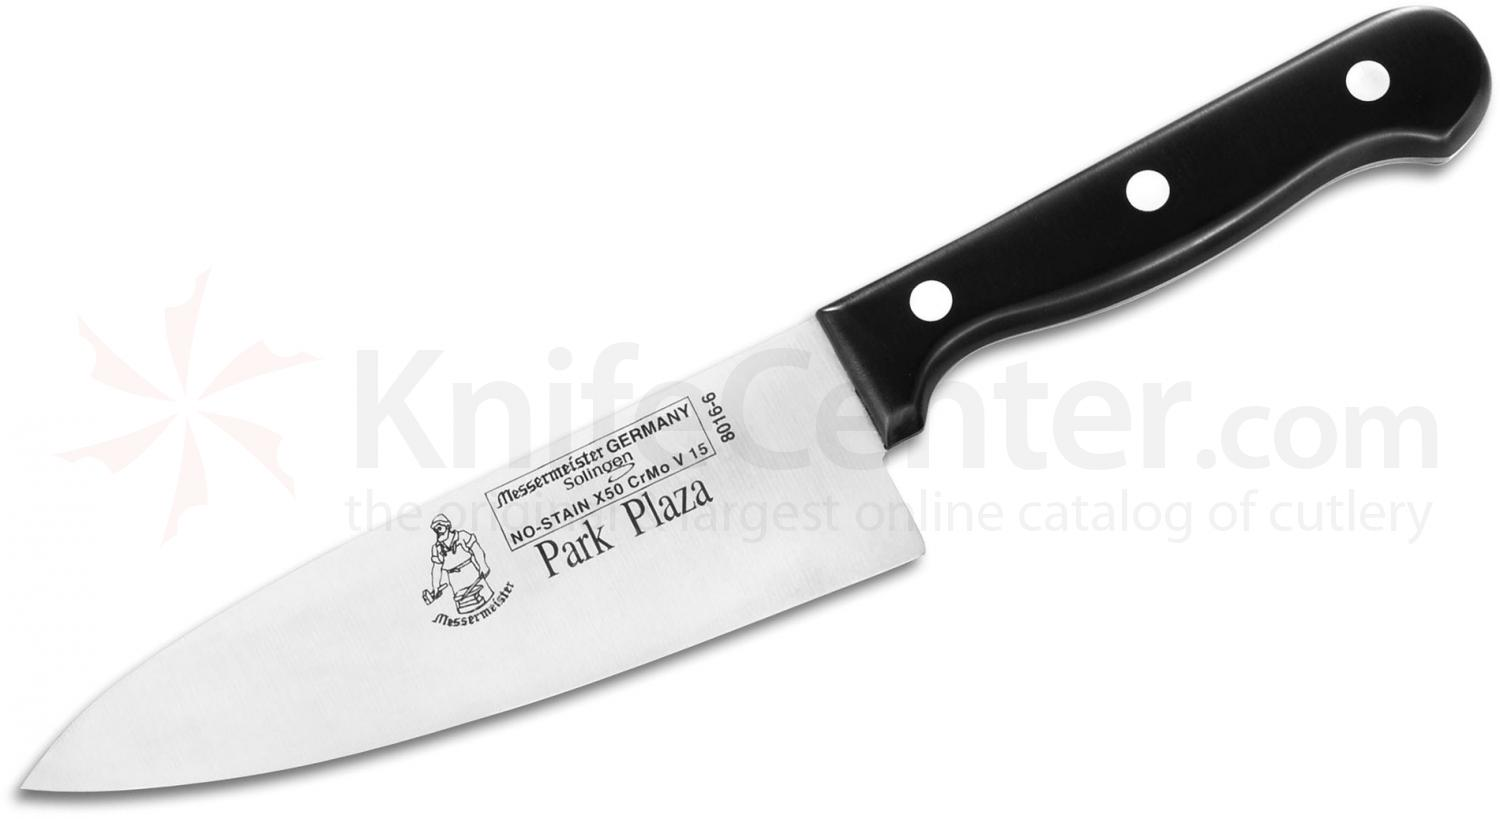 Messermeister Park Plaza 6 inch Chef's Knife